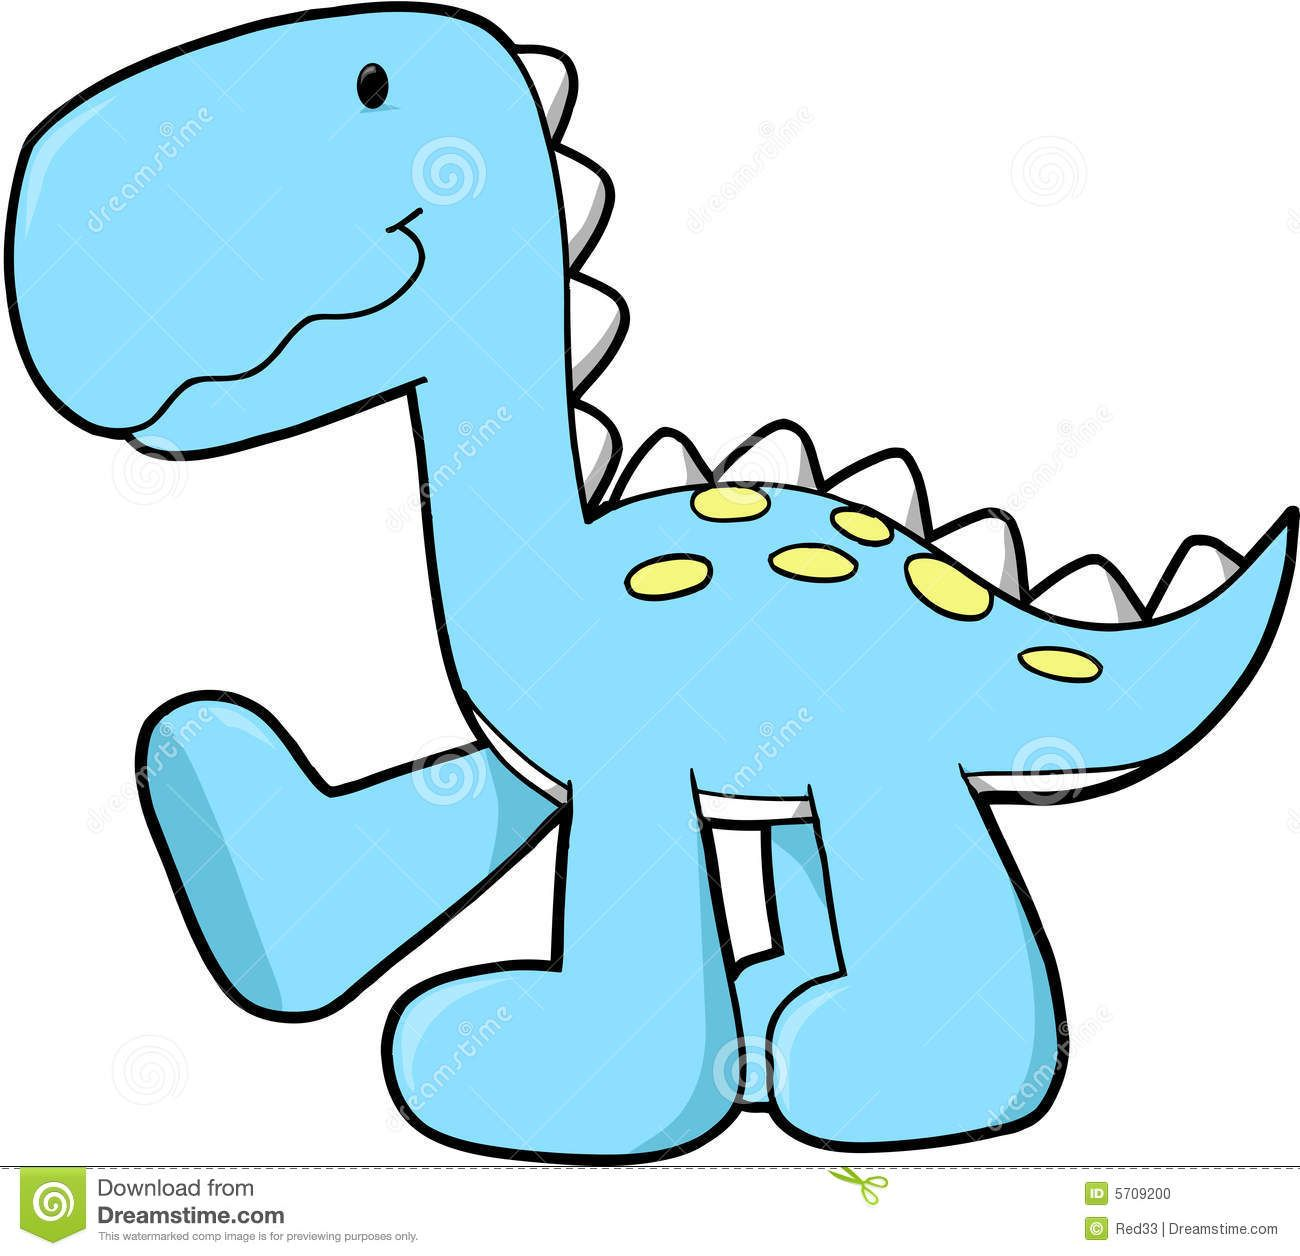 cute baby dinosaur clipart at getdrawings com free for personal